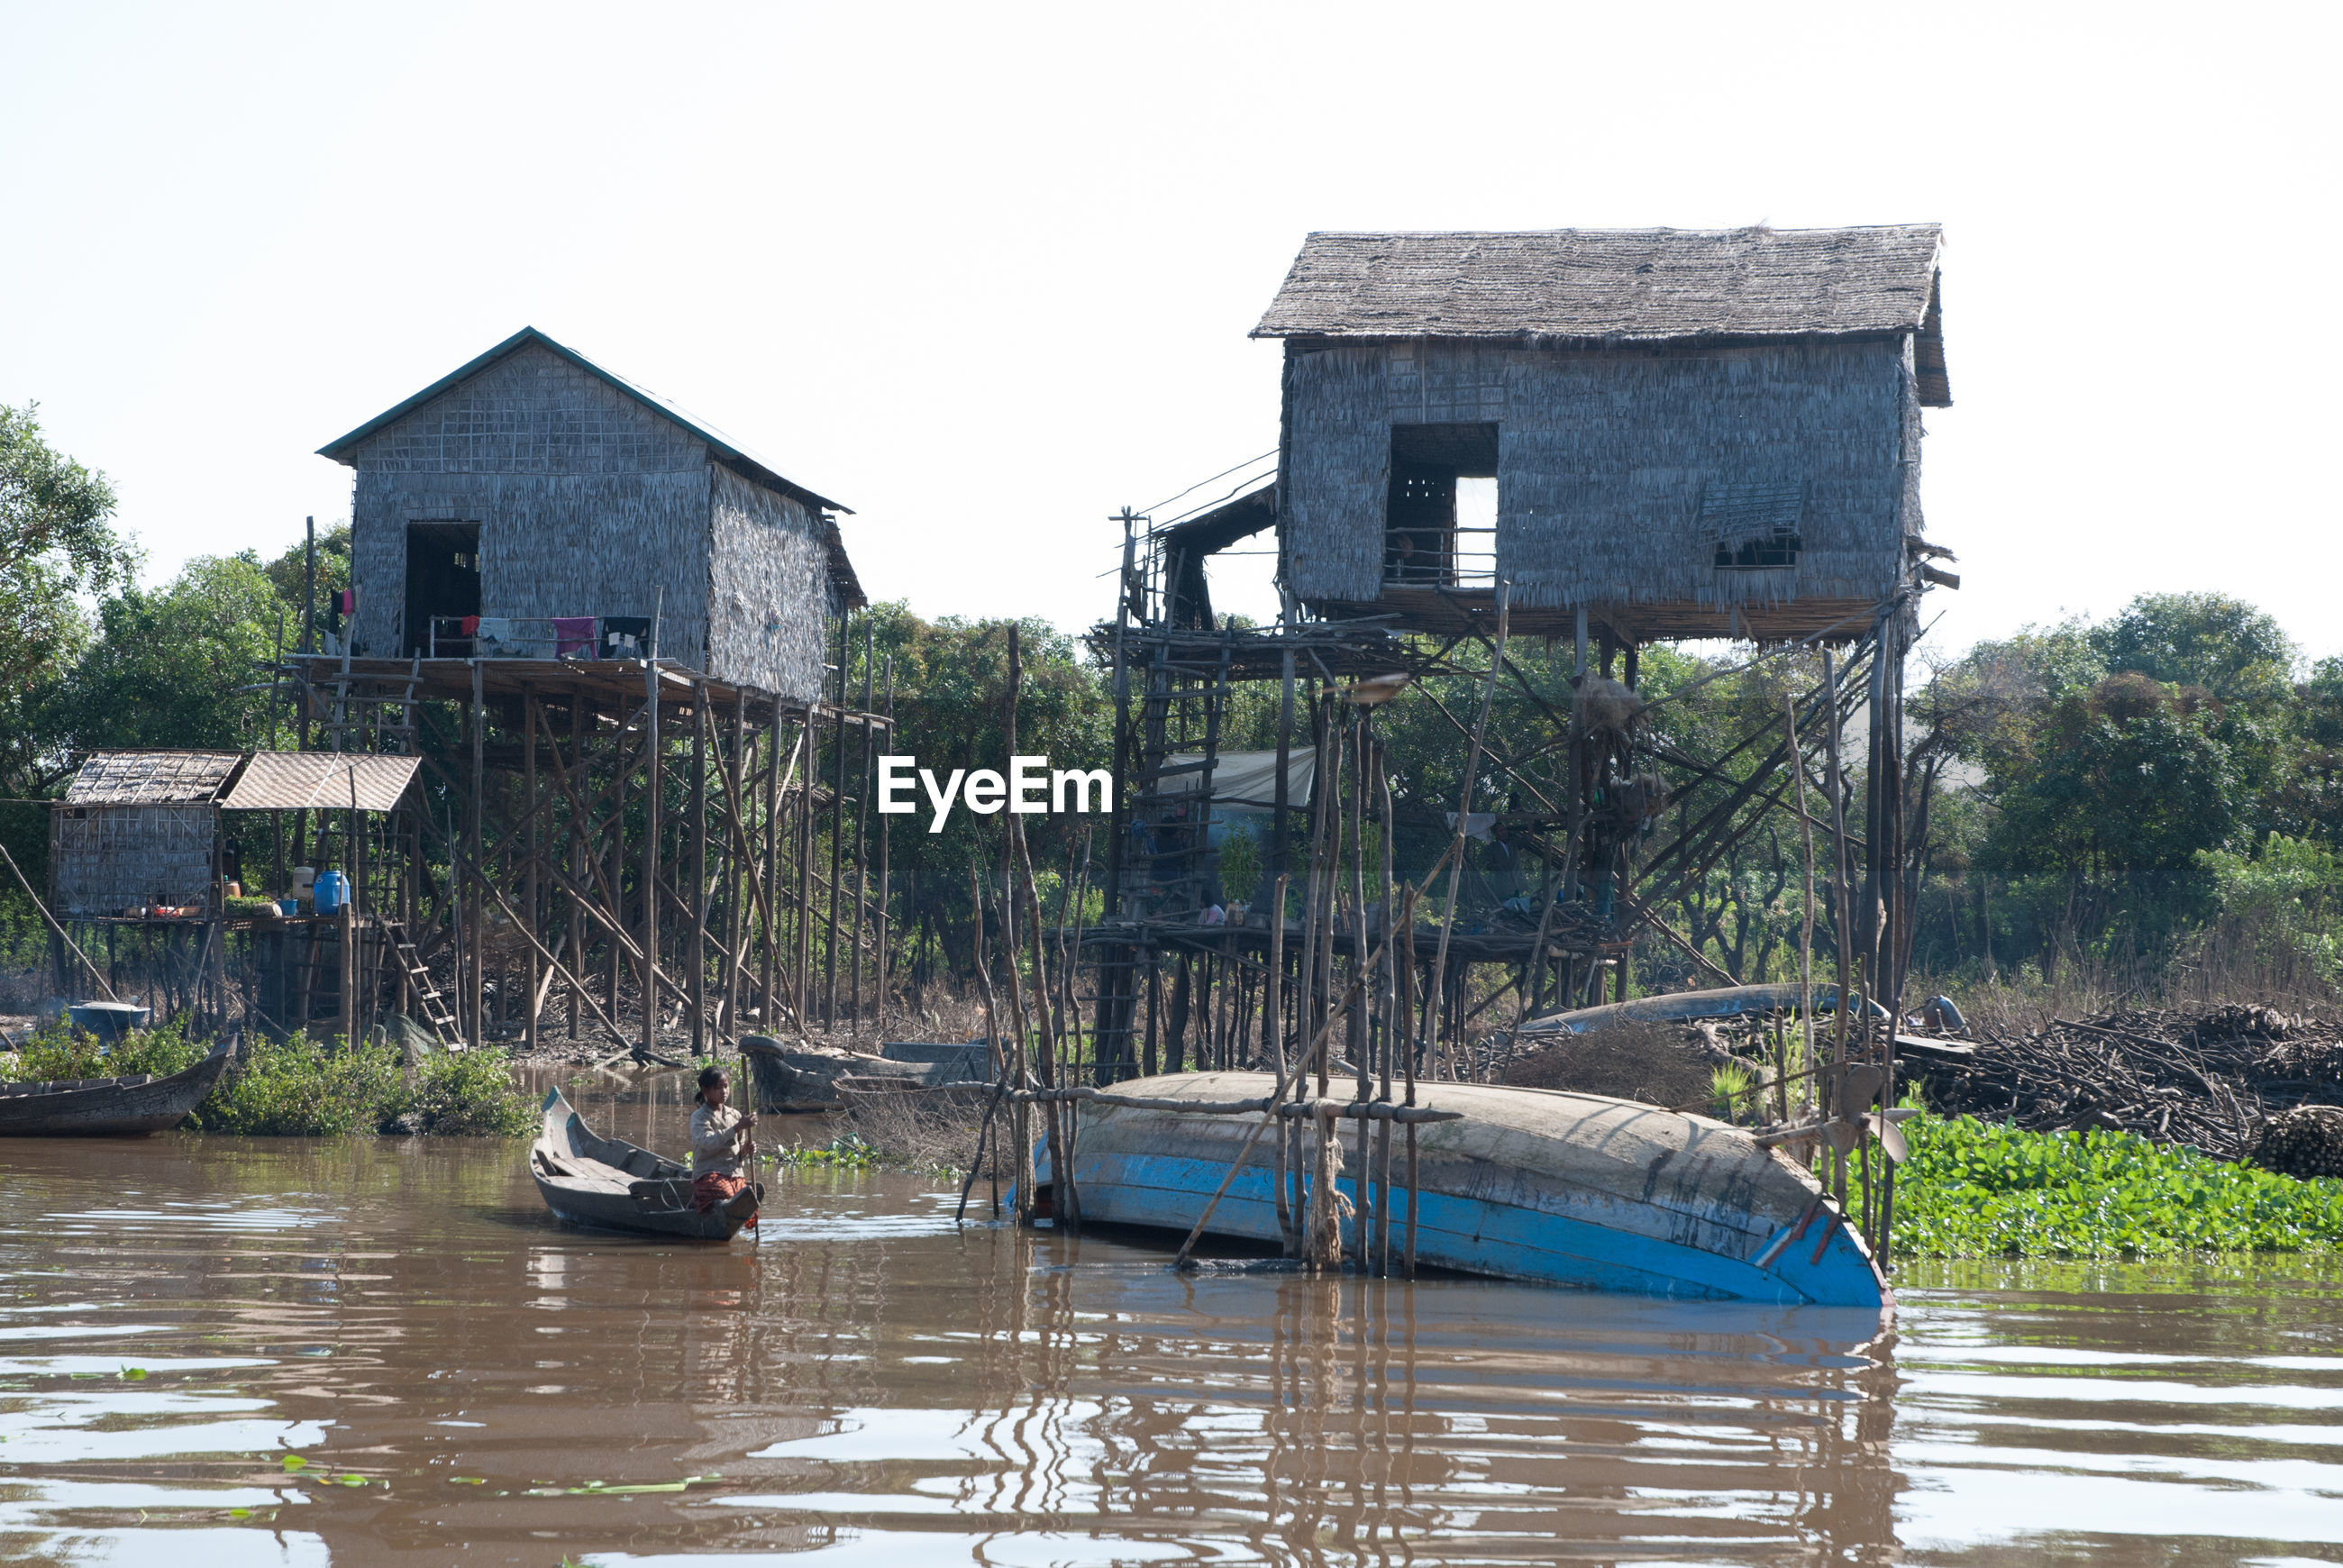 BOATS MOORED IN RIVER WITH BUILDINGS IN BACKGROUND